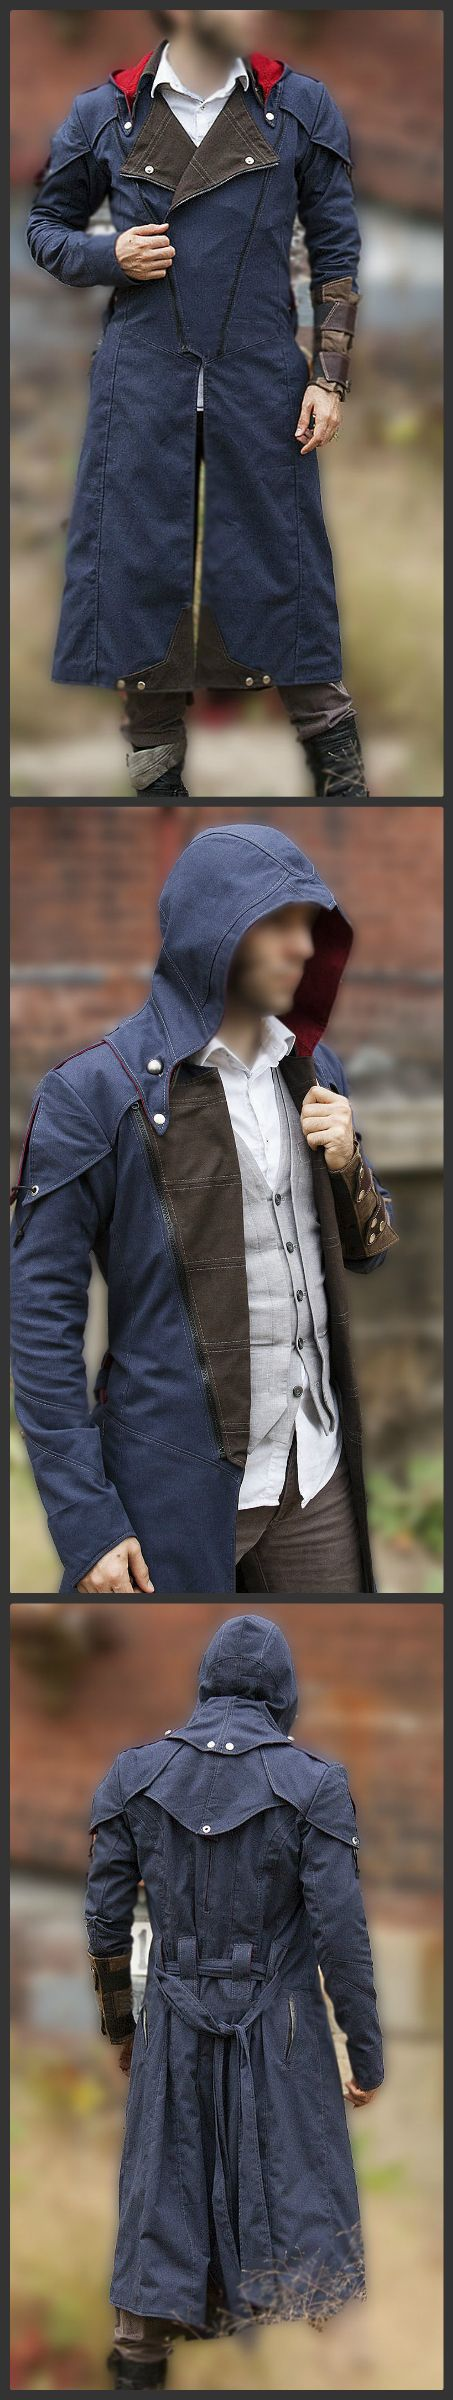 Check out our new collection of Denim from the Top Rated Game Assassin Creed now available in our store. Shop Now Assassin's Creed Unity Denim Cloak Cosplay coat with Hoodie at discounted price. #assassin #assassincreed #toprated #games #videogames #celebrity #fashion #denim #denimcoat #likeforlikes #fashionbloggers #blogger #like4likes #creed #creedunity #like #love